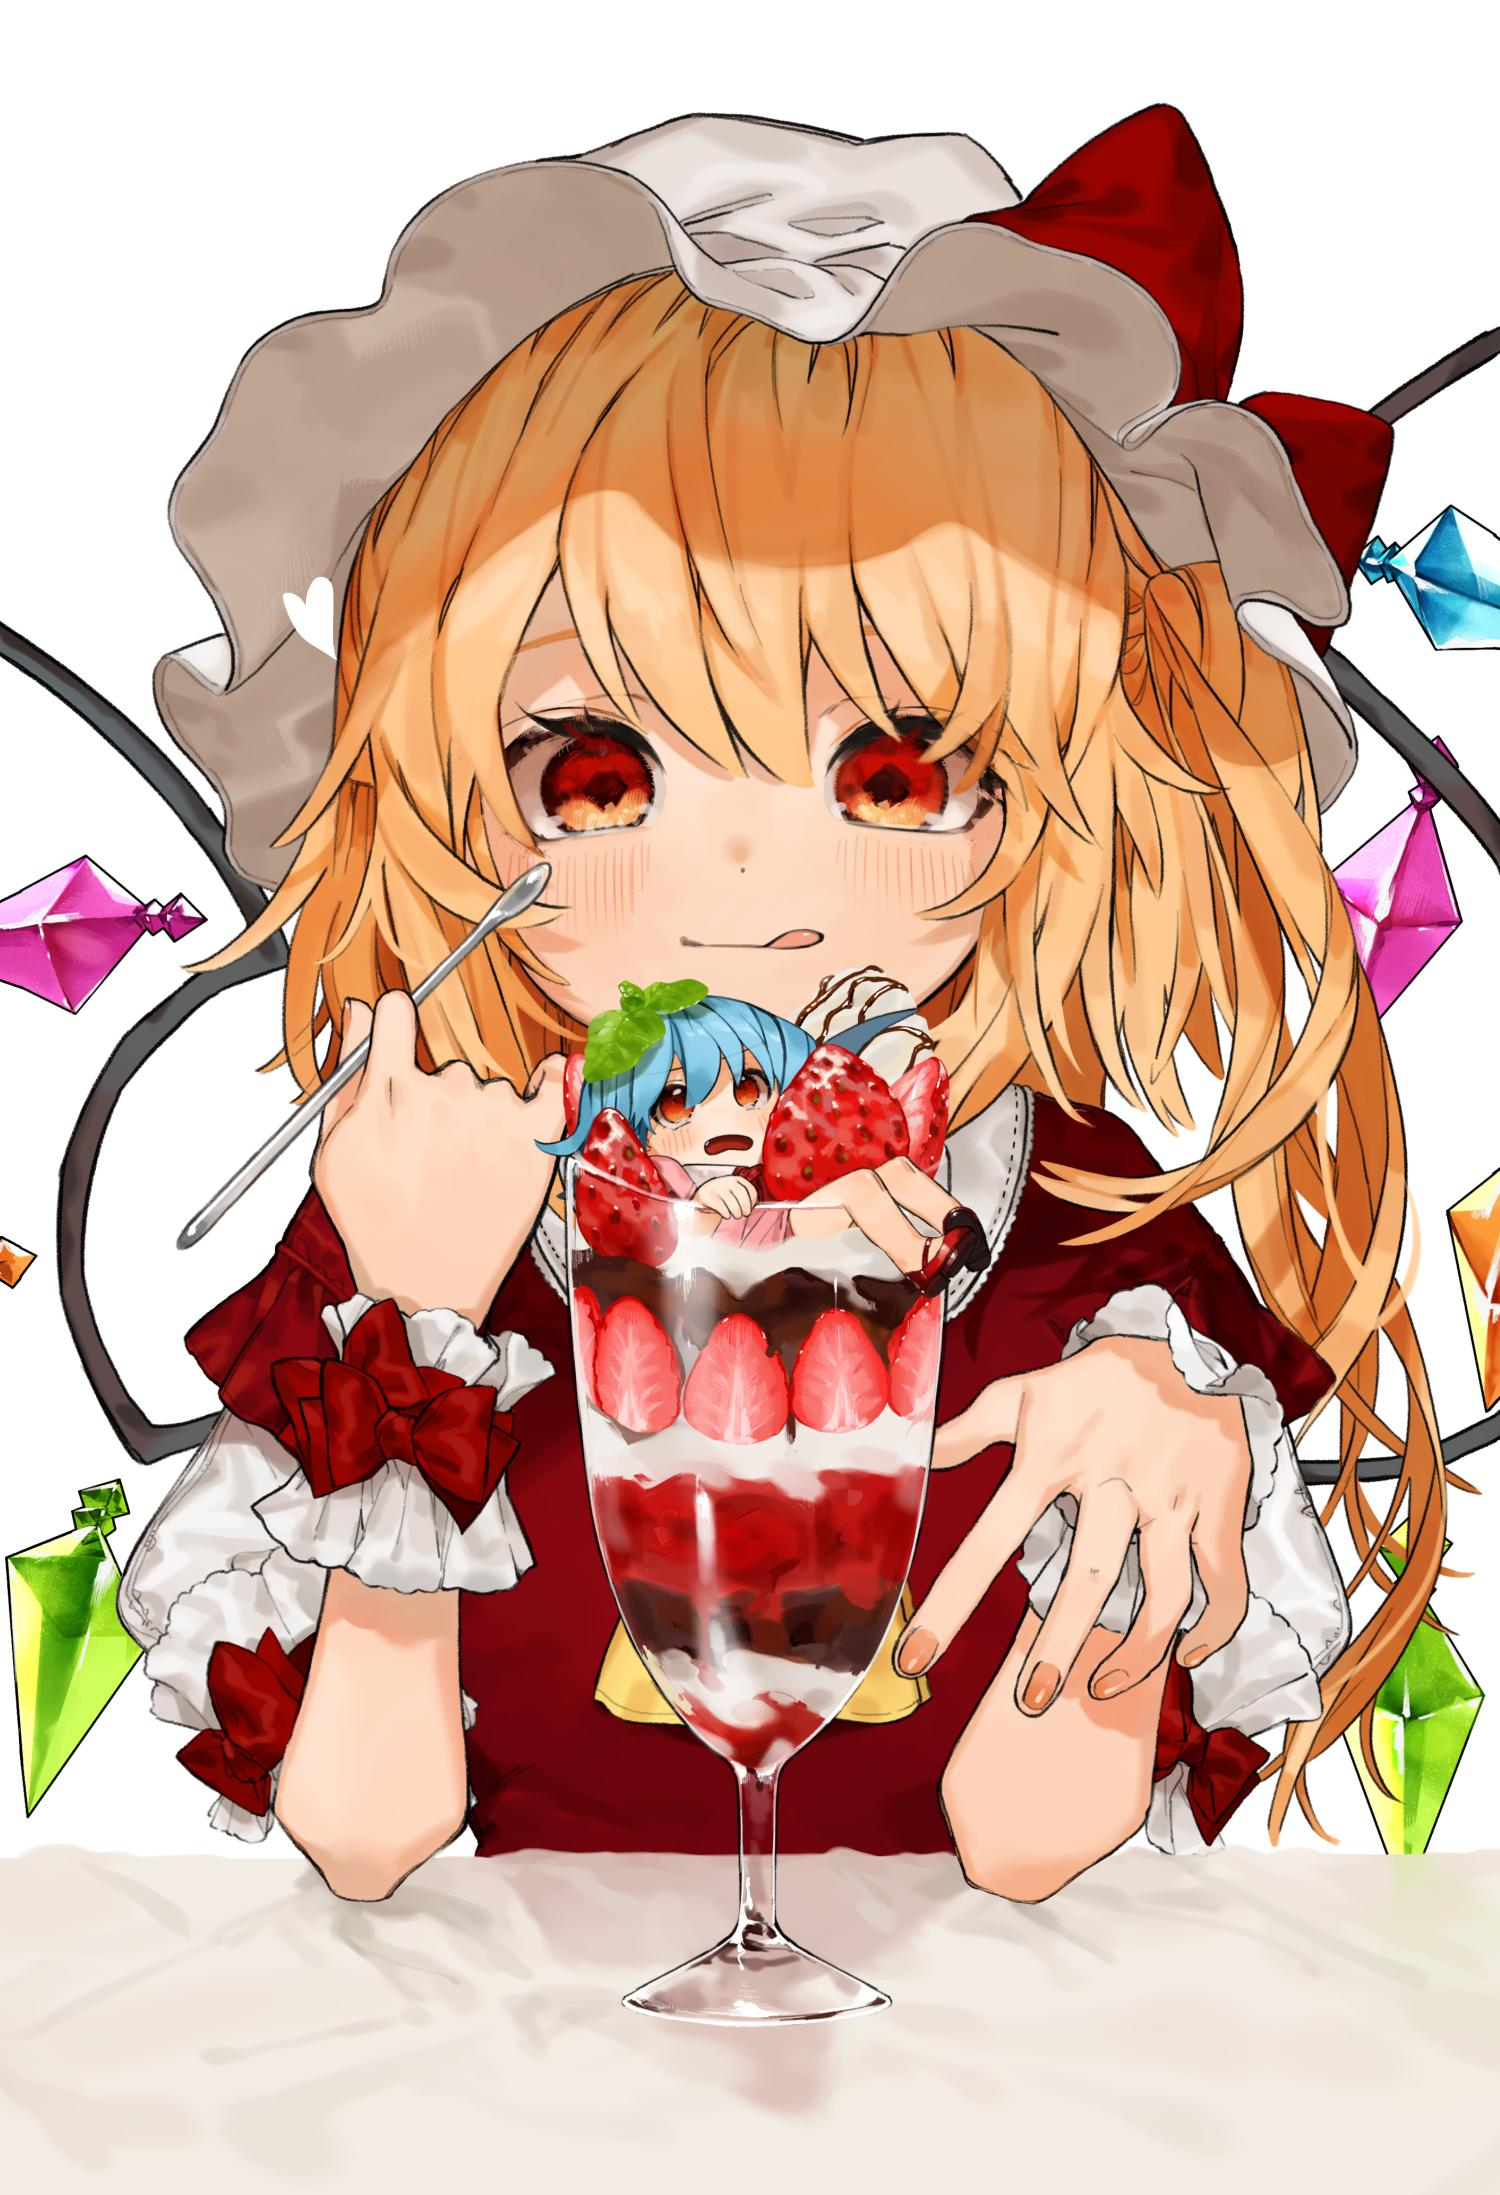 2girls :p alternate_costume ascot bangs blonde_hair blue_hair blush bow chocolate_syrup commentary cup dress drinking_glass eyebrows_visible_through_hair flandre_scarlet food fruit gotoh510 hair_between_eyes hands_up hat highres holding holding_spoon ice_cream in_container in_cup in_food leaf leaf_on_head looking_at_viewer minigirl mob_cap multiple_girls one_side_up open_mouth red_bow red_dress red_eyes remilia_scarlet short_hair siblings simple_background sisters spoon strawberry sundae symbol_commentary tongue tongue_out touhou upper_body white_background white_headwear wrist_cuffs yellow_neckwear